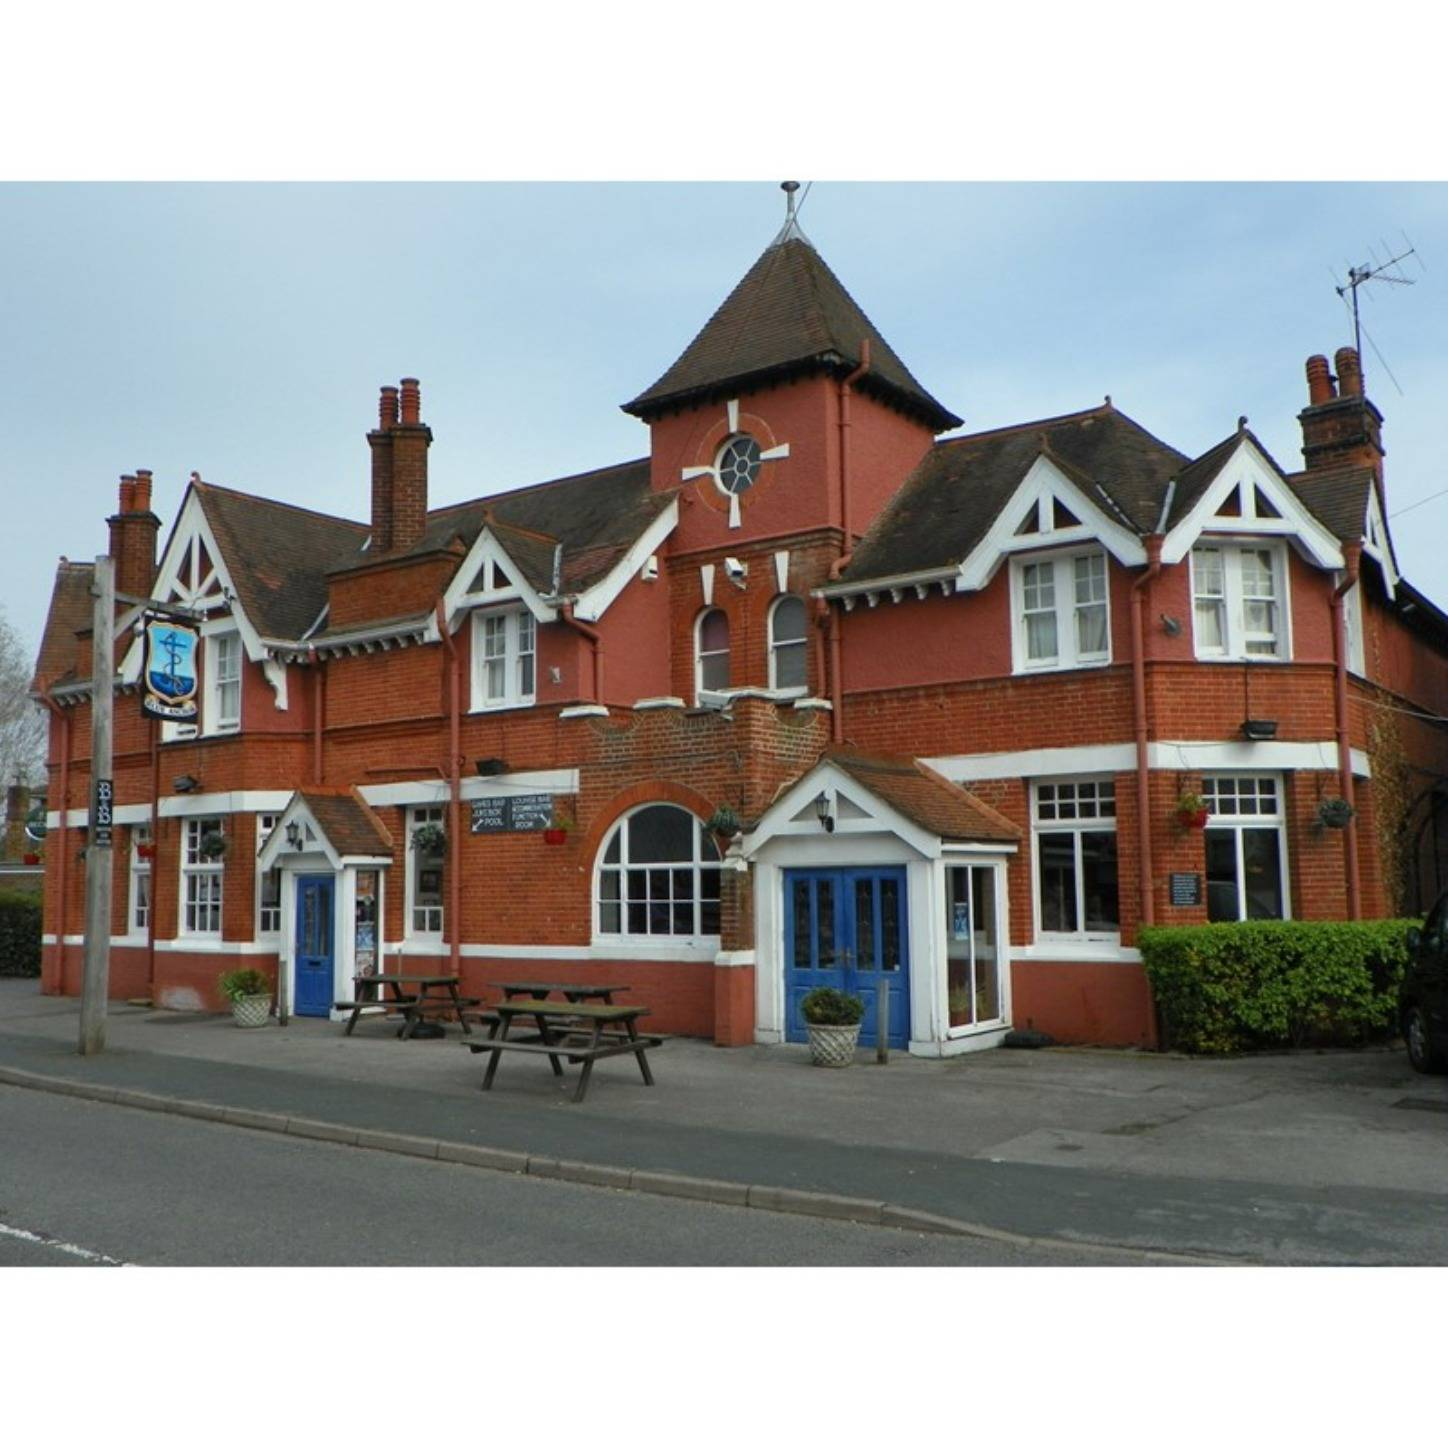 An old brick house at The Blue Anchor.